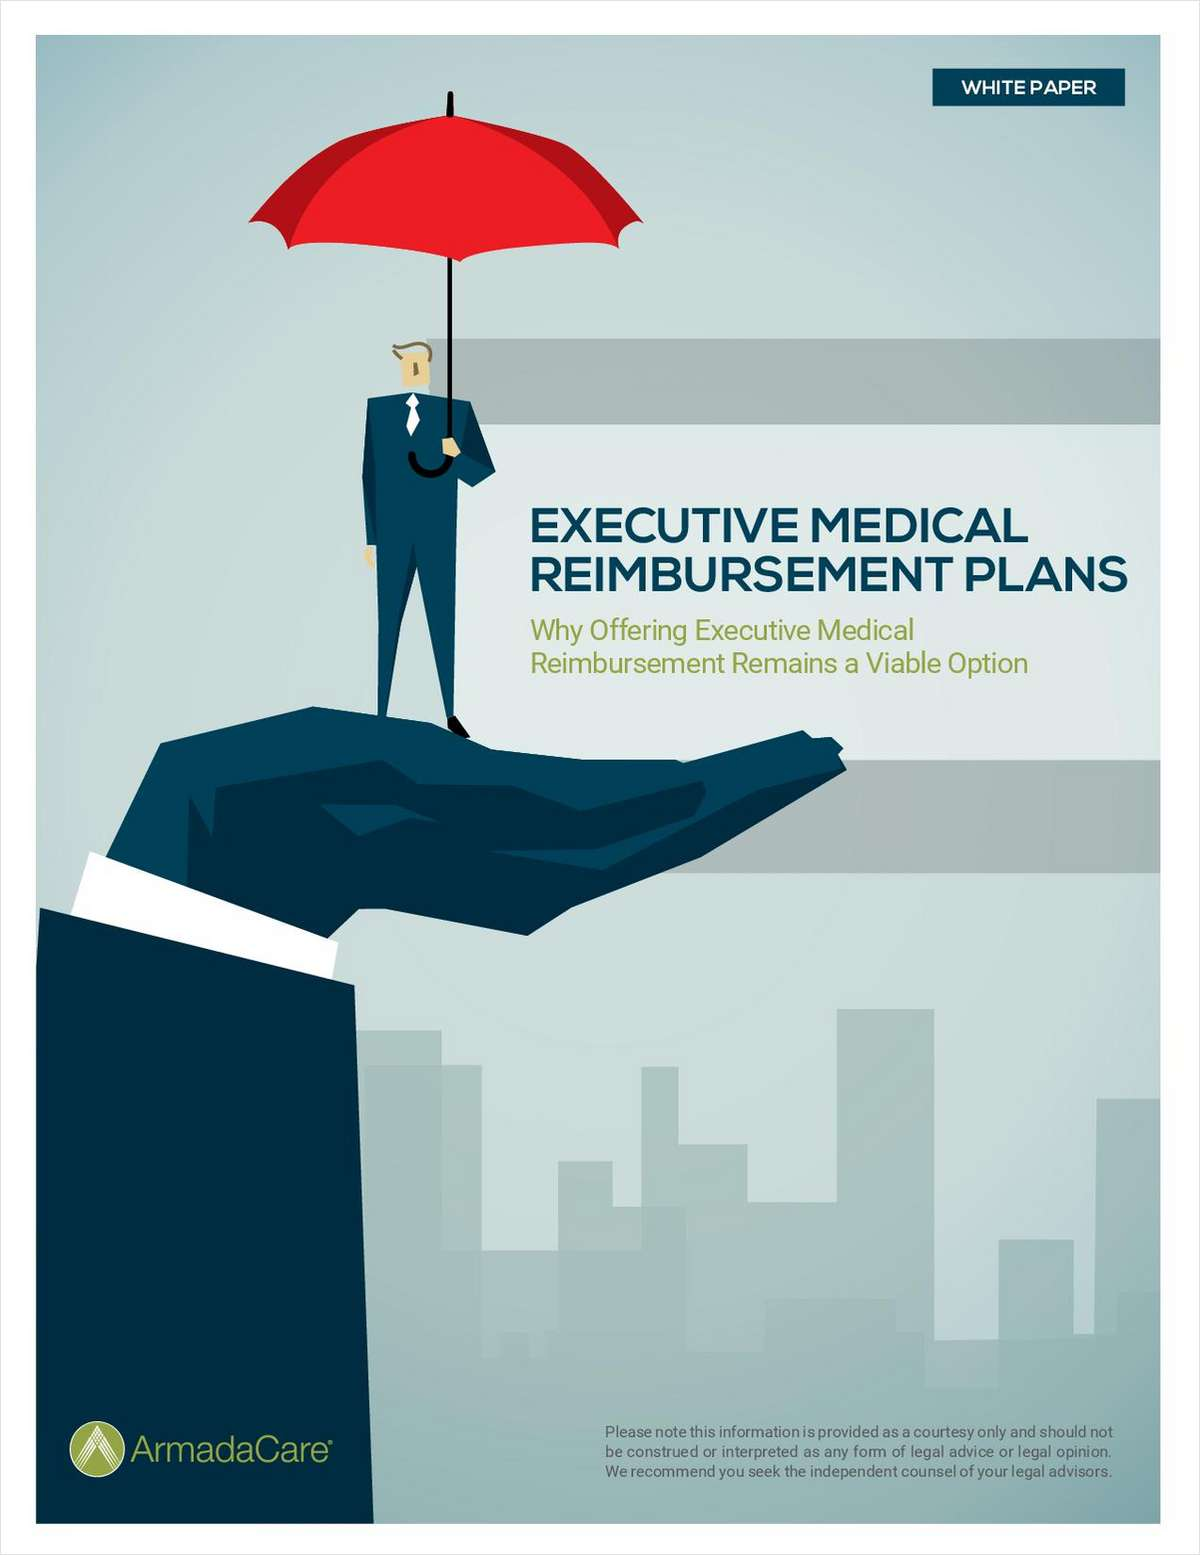 Why Offering Executive Medical Reimbursement Remains a Viable Option